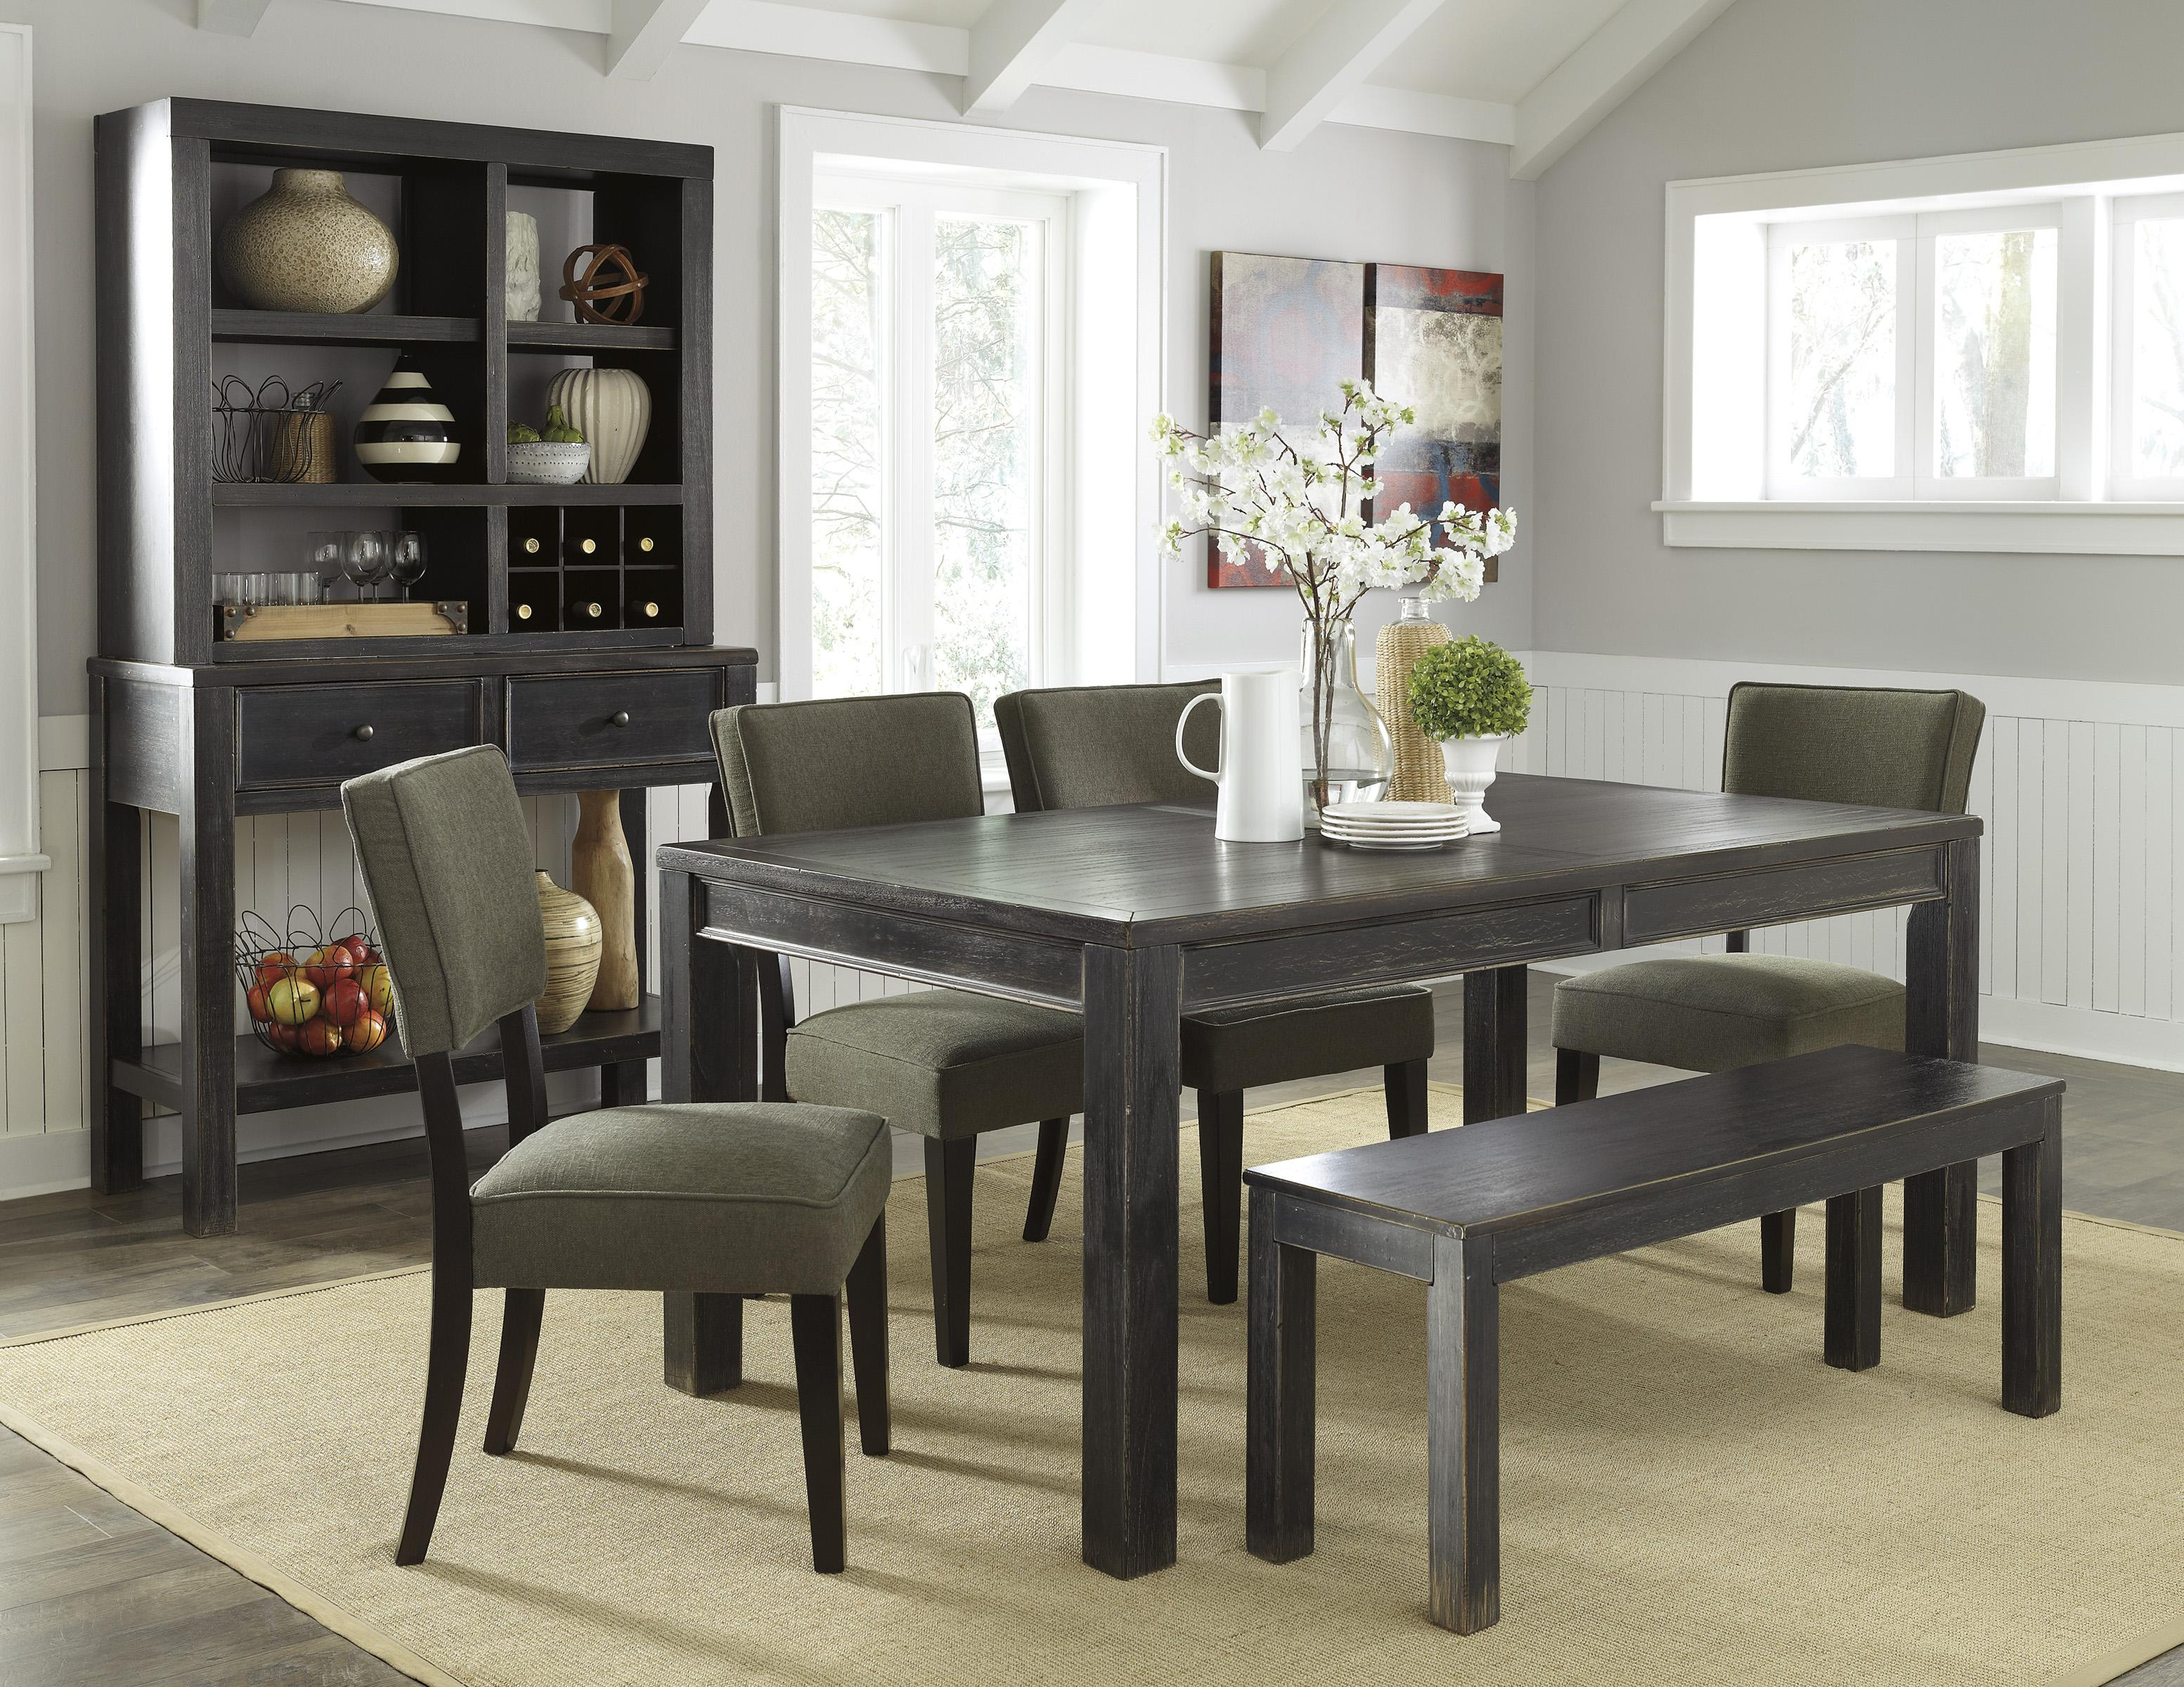 Signature Design by Ashley Gavelston Casual Dining Room Group - Item Number: D532 Dining Room Group 7